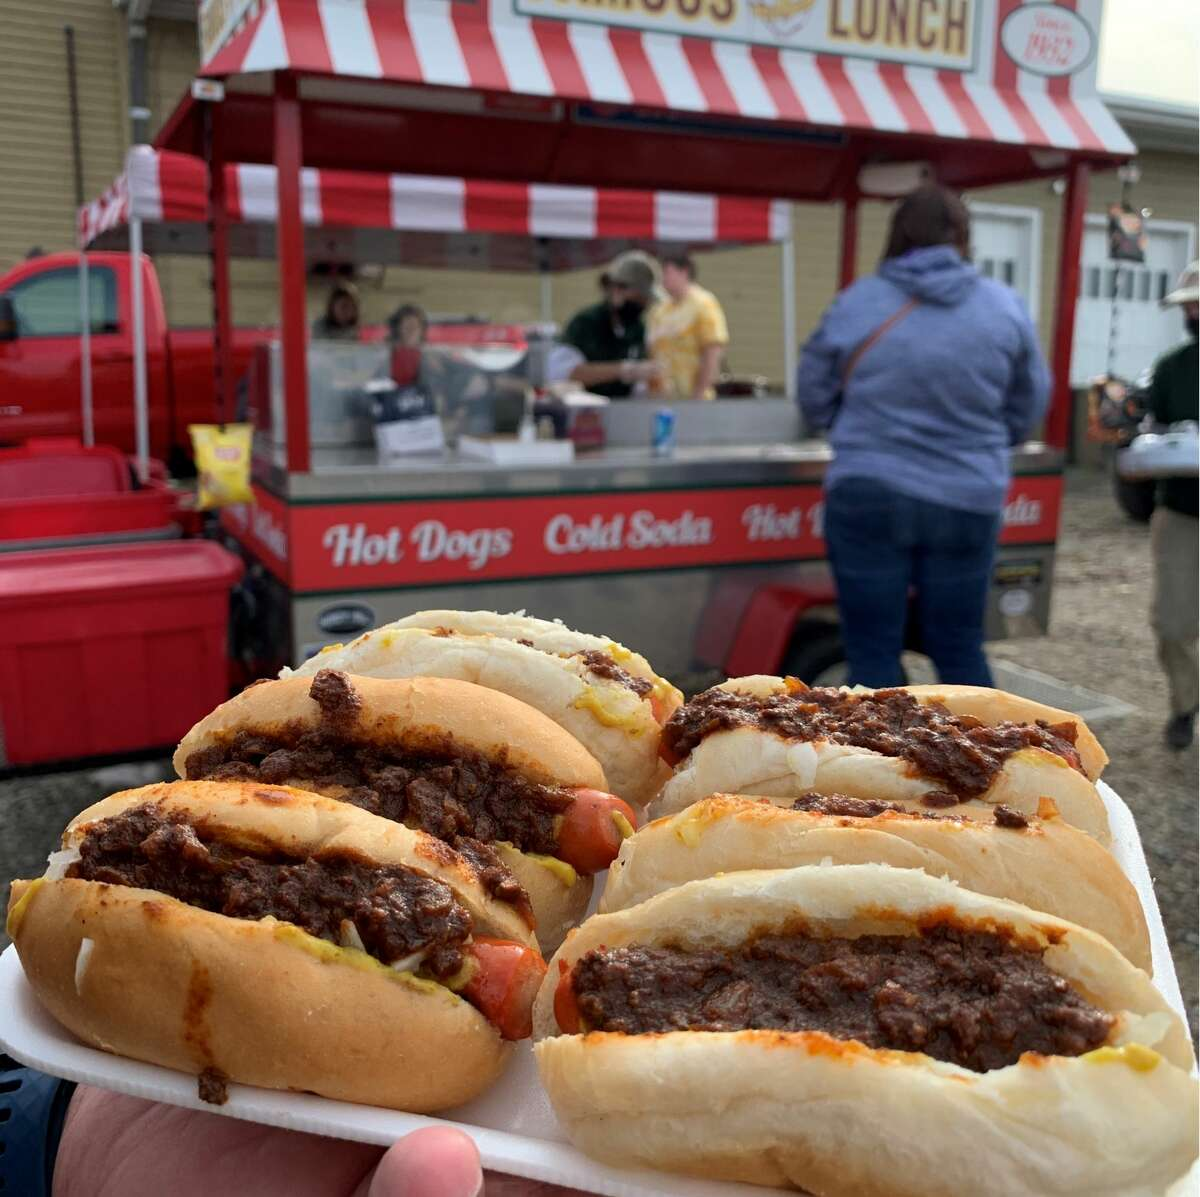 One of the most well-known handheld meals in the Capital Region, Famous Lunch's hot dogs. These were eaten at a stand at Windy Acres Farms.